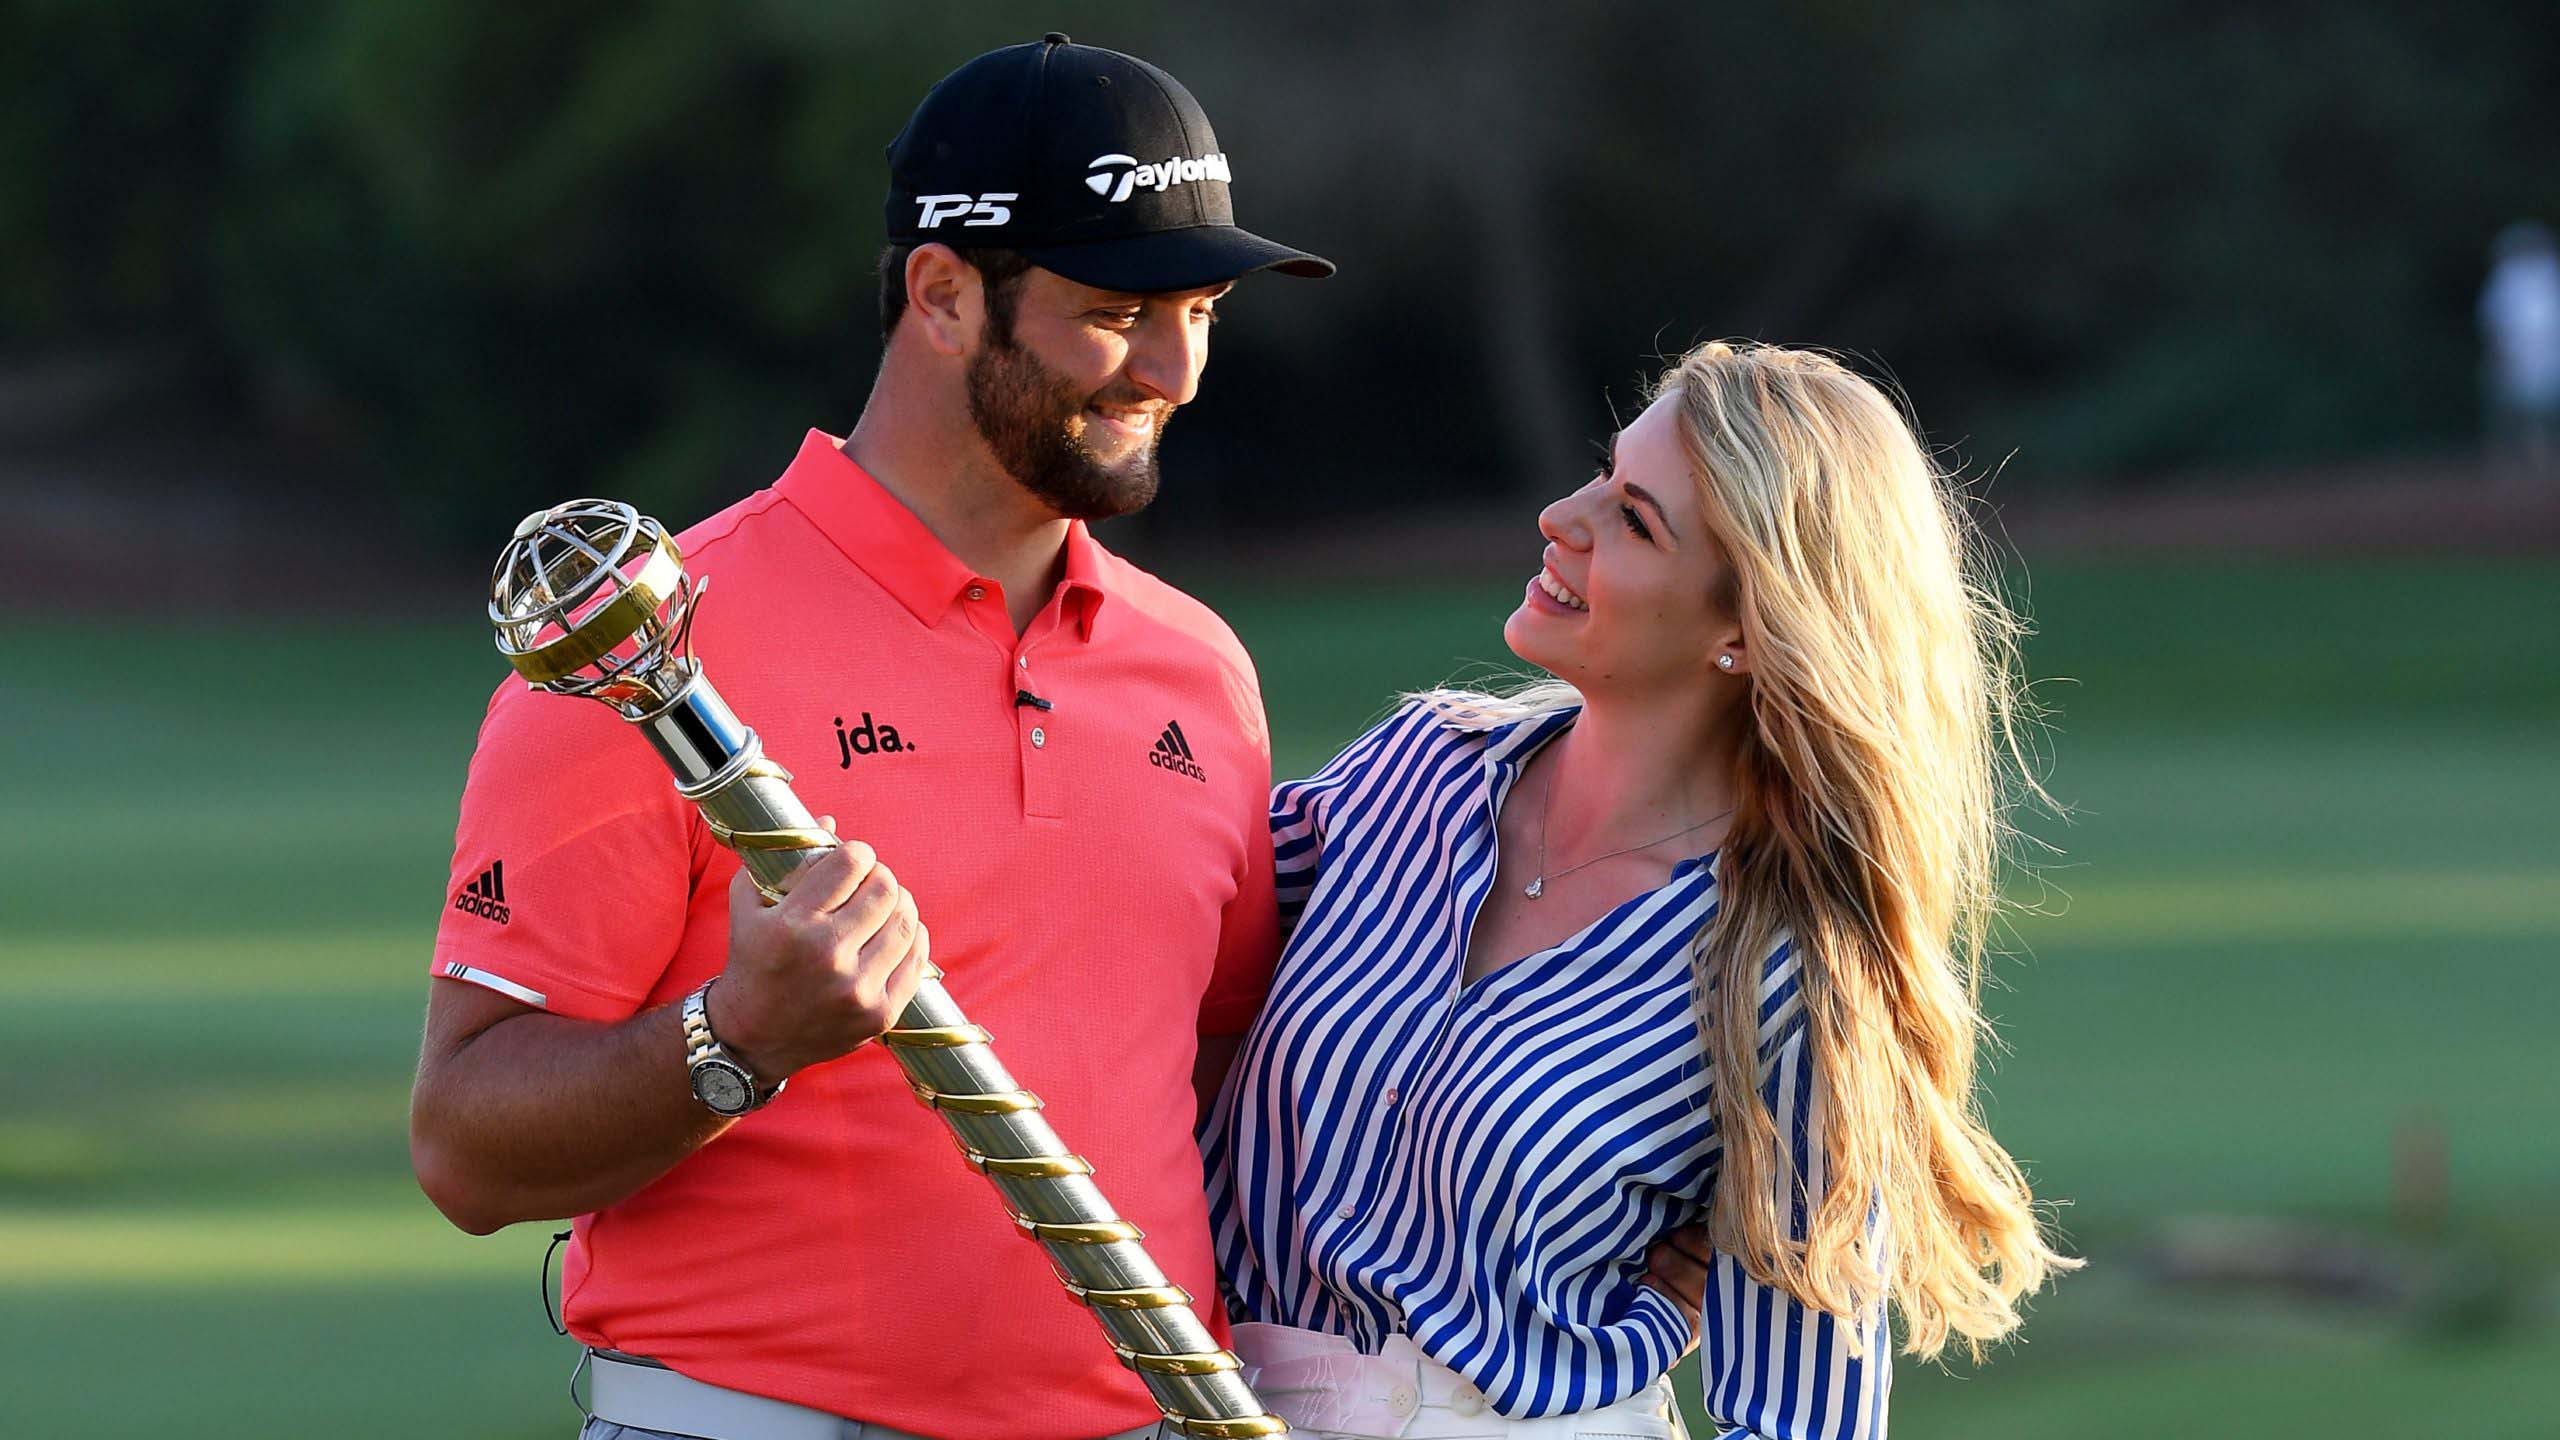 Jon Rahm with his wife